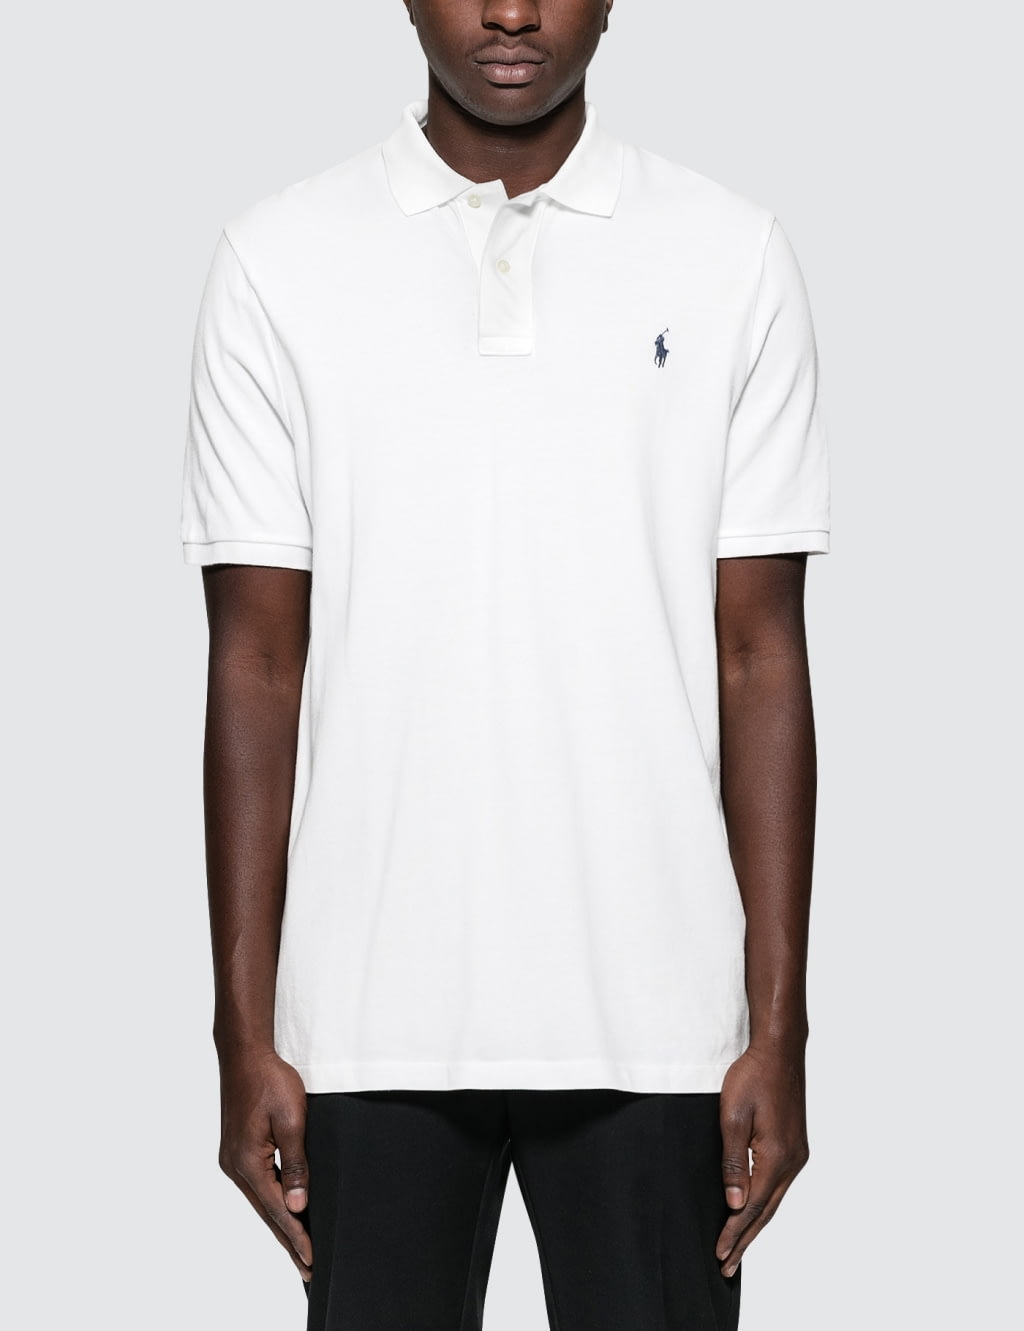 Buy Original Polo Ralph Lauren Classic Fit S S Polo at Indonesia ... b1be345545ba